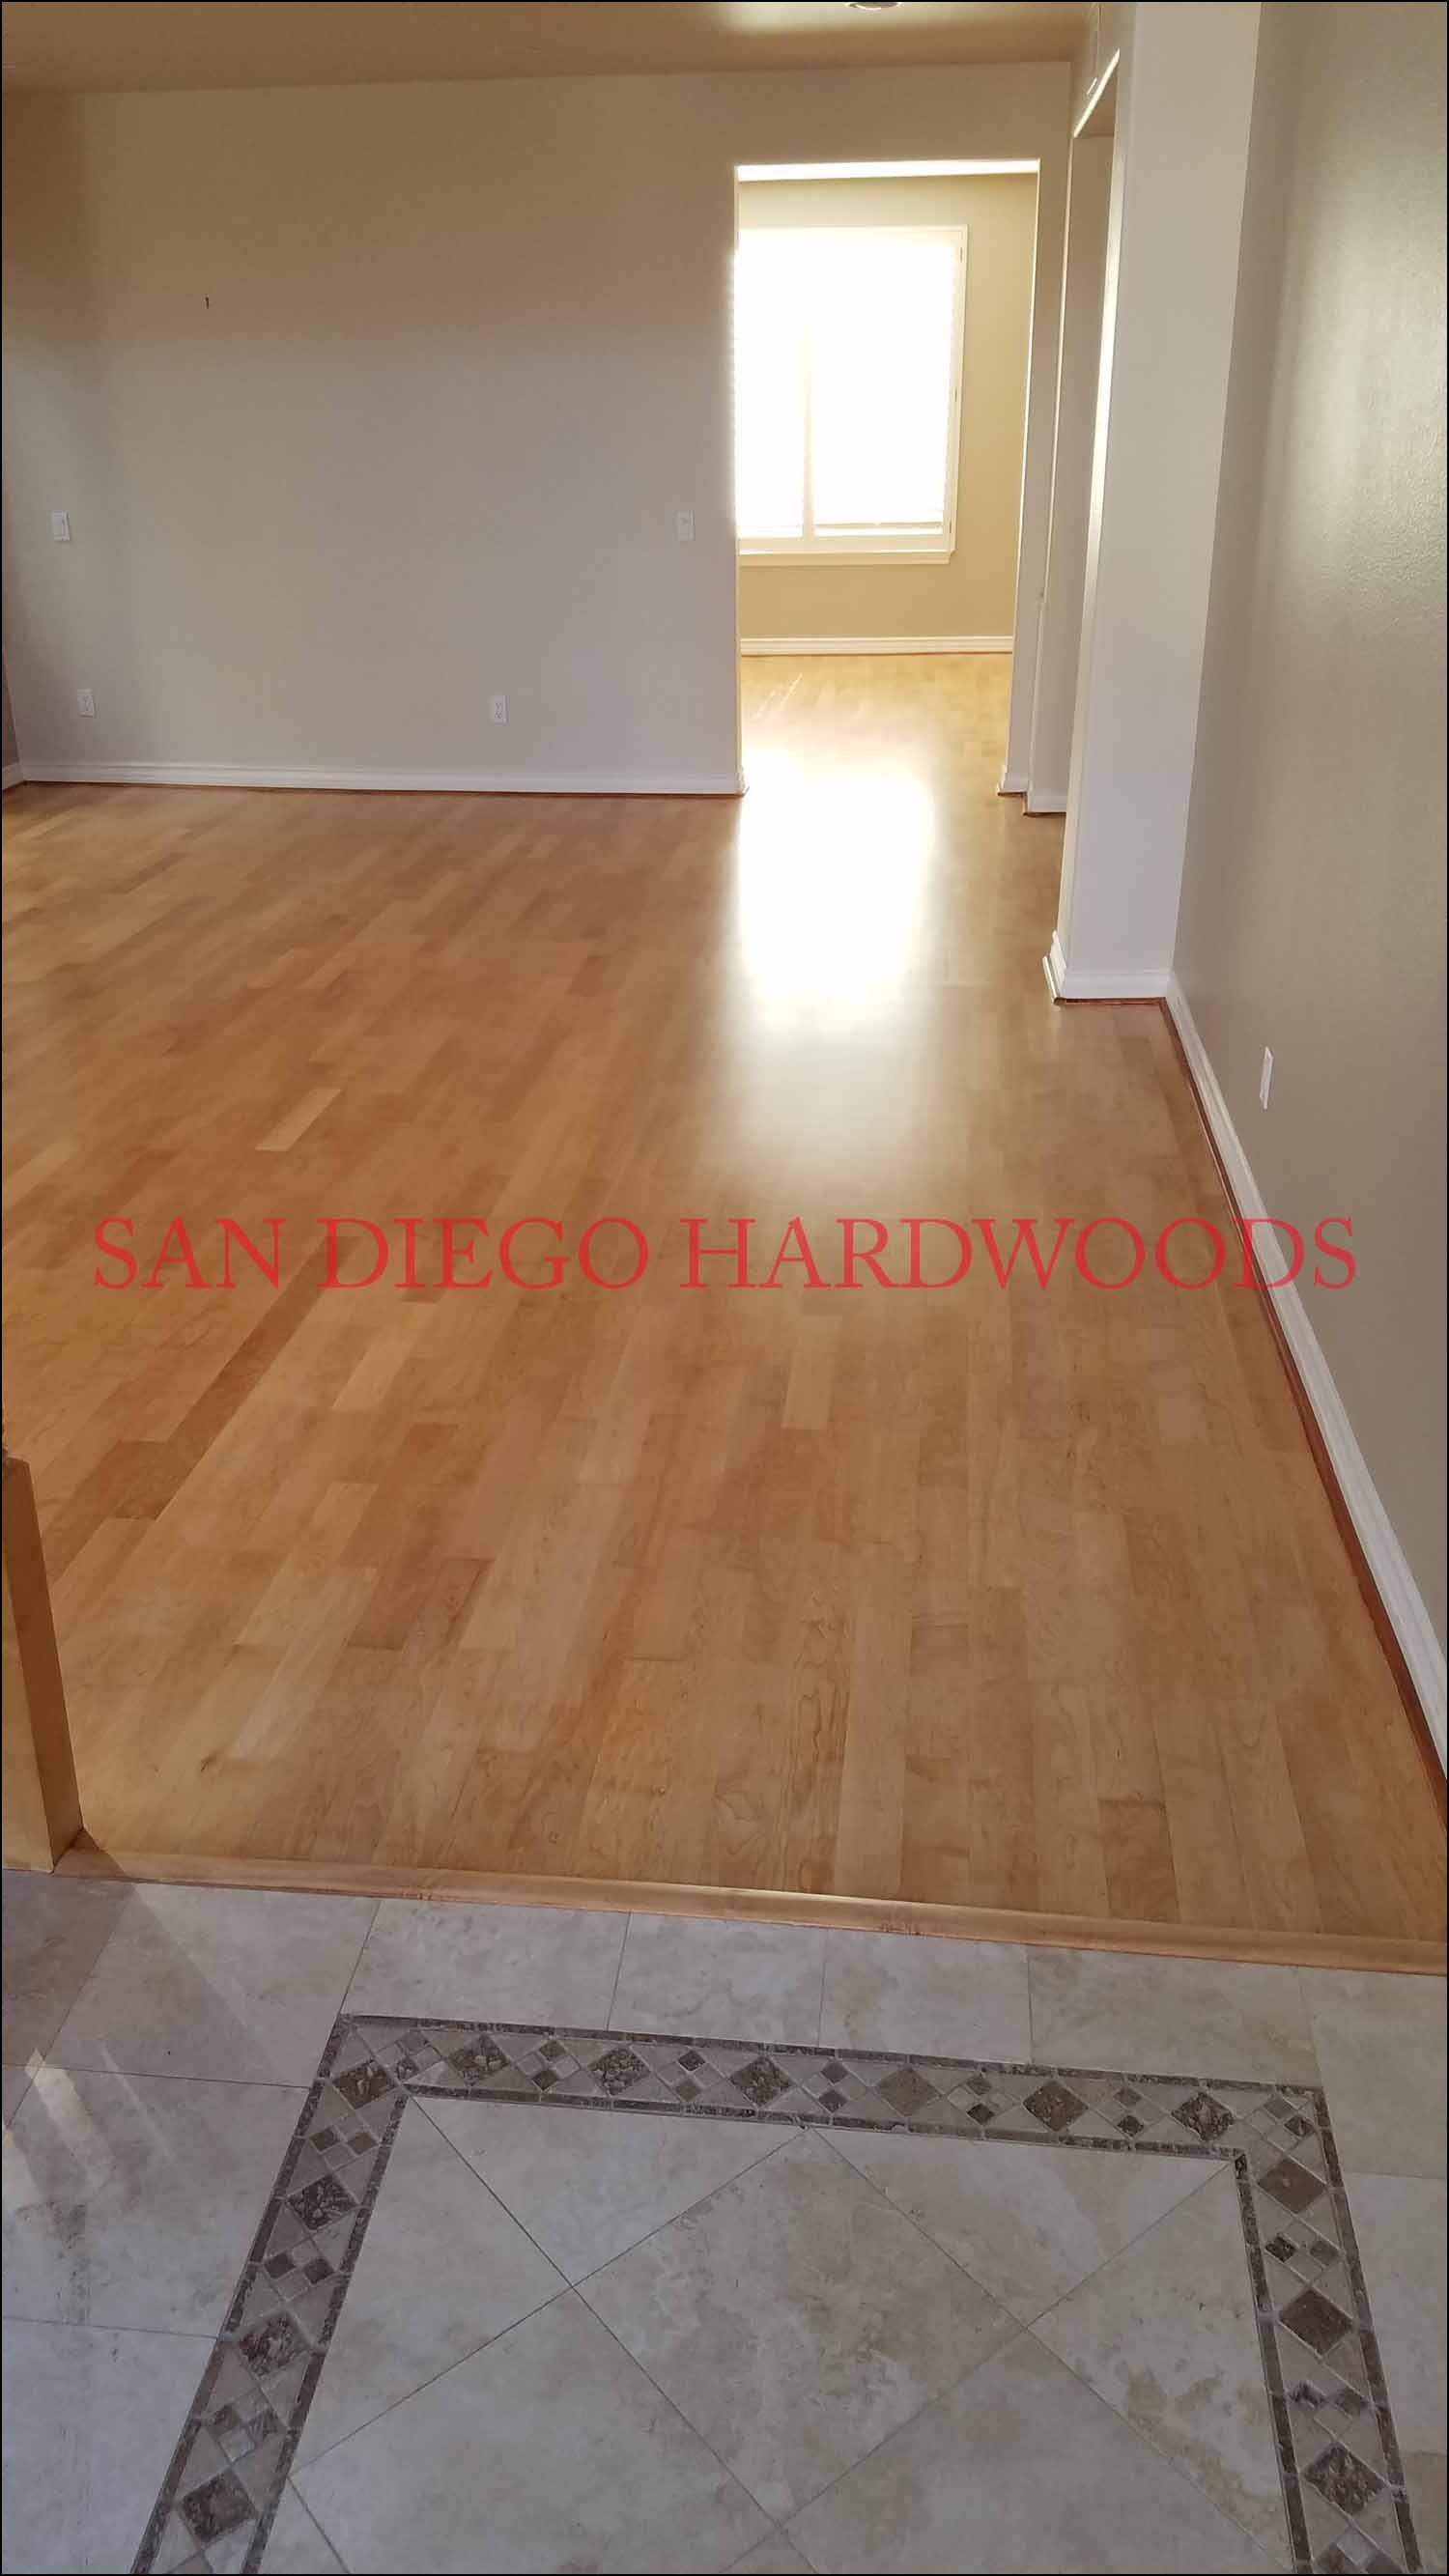 mullican vs bruce hardwood flooring of hardwood flooring suppliers france flooring ideas with regard to hardwood flooring installation san diego images san diego hardwood floor restoration 858 699 0072 licensed of